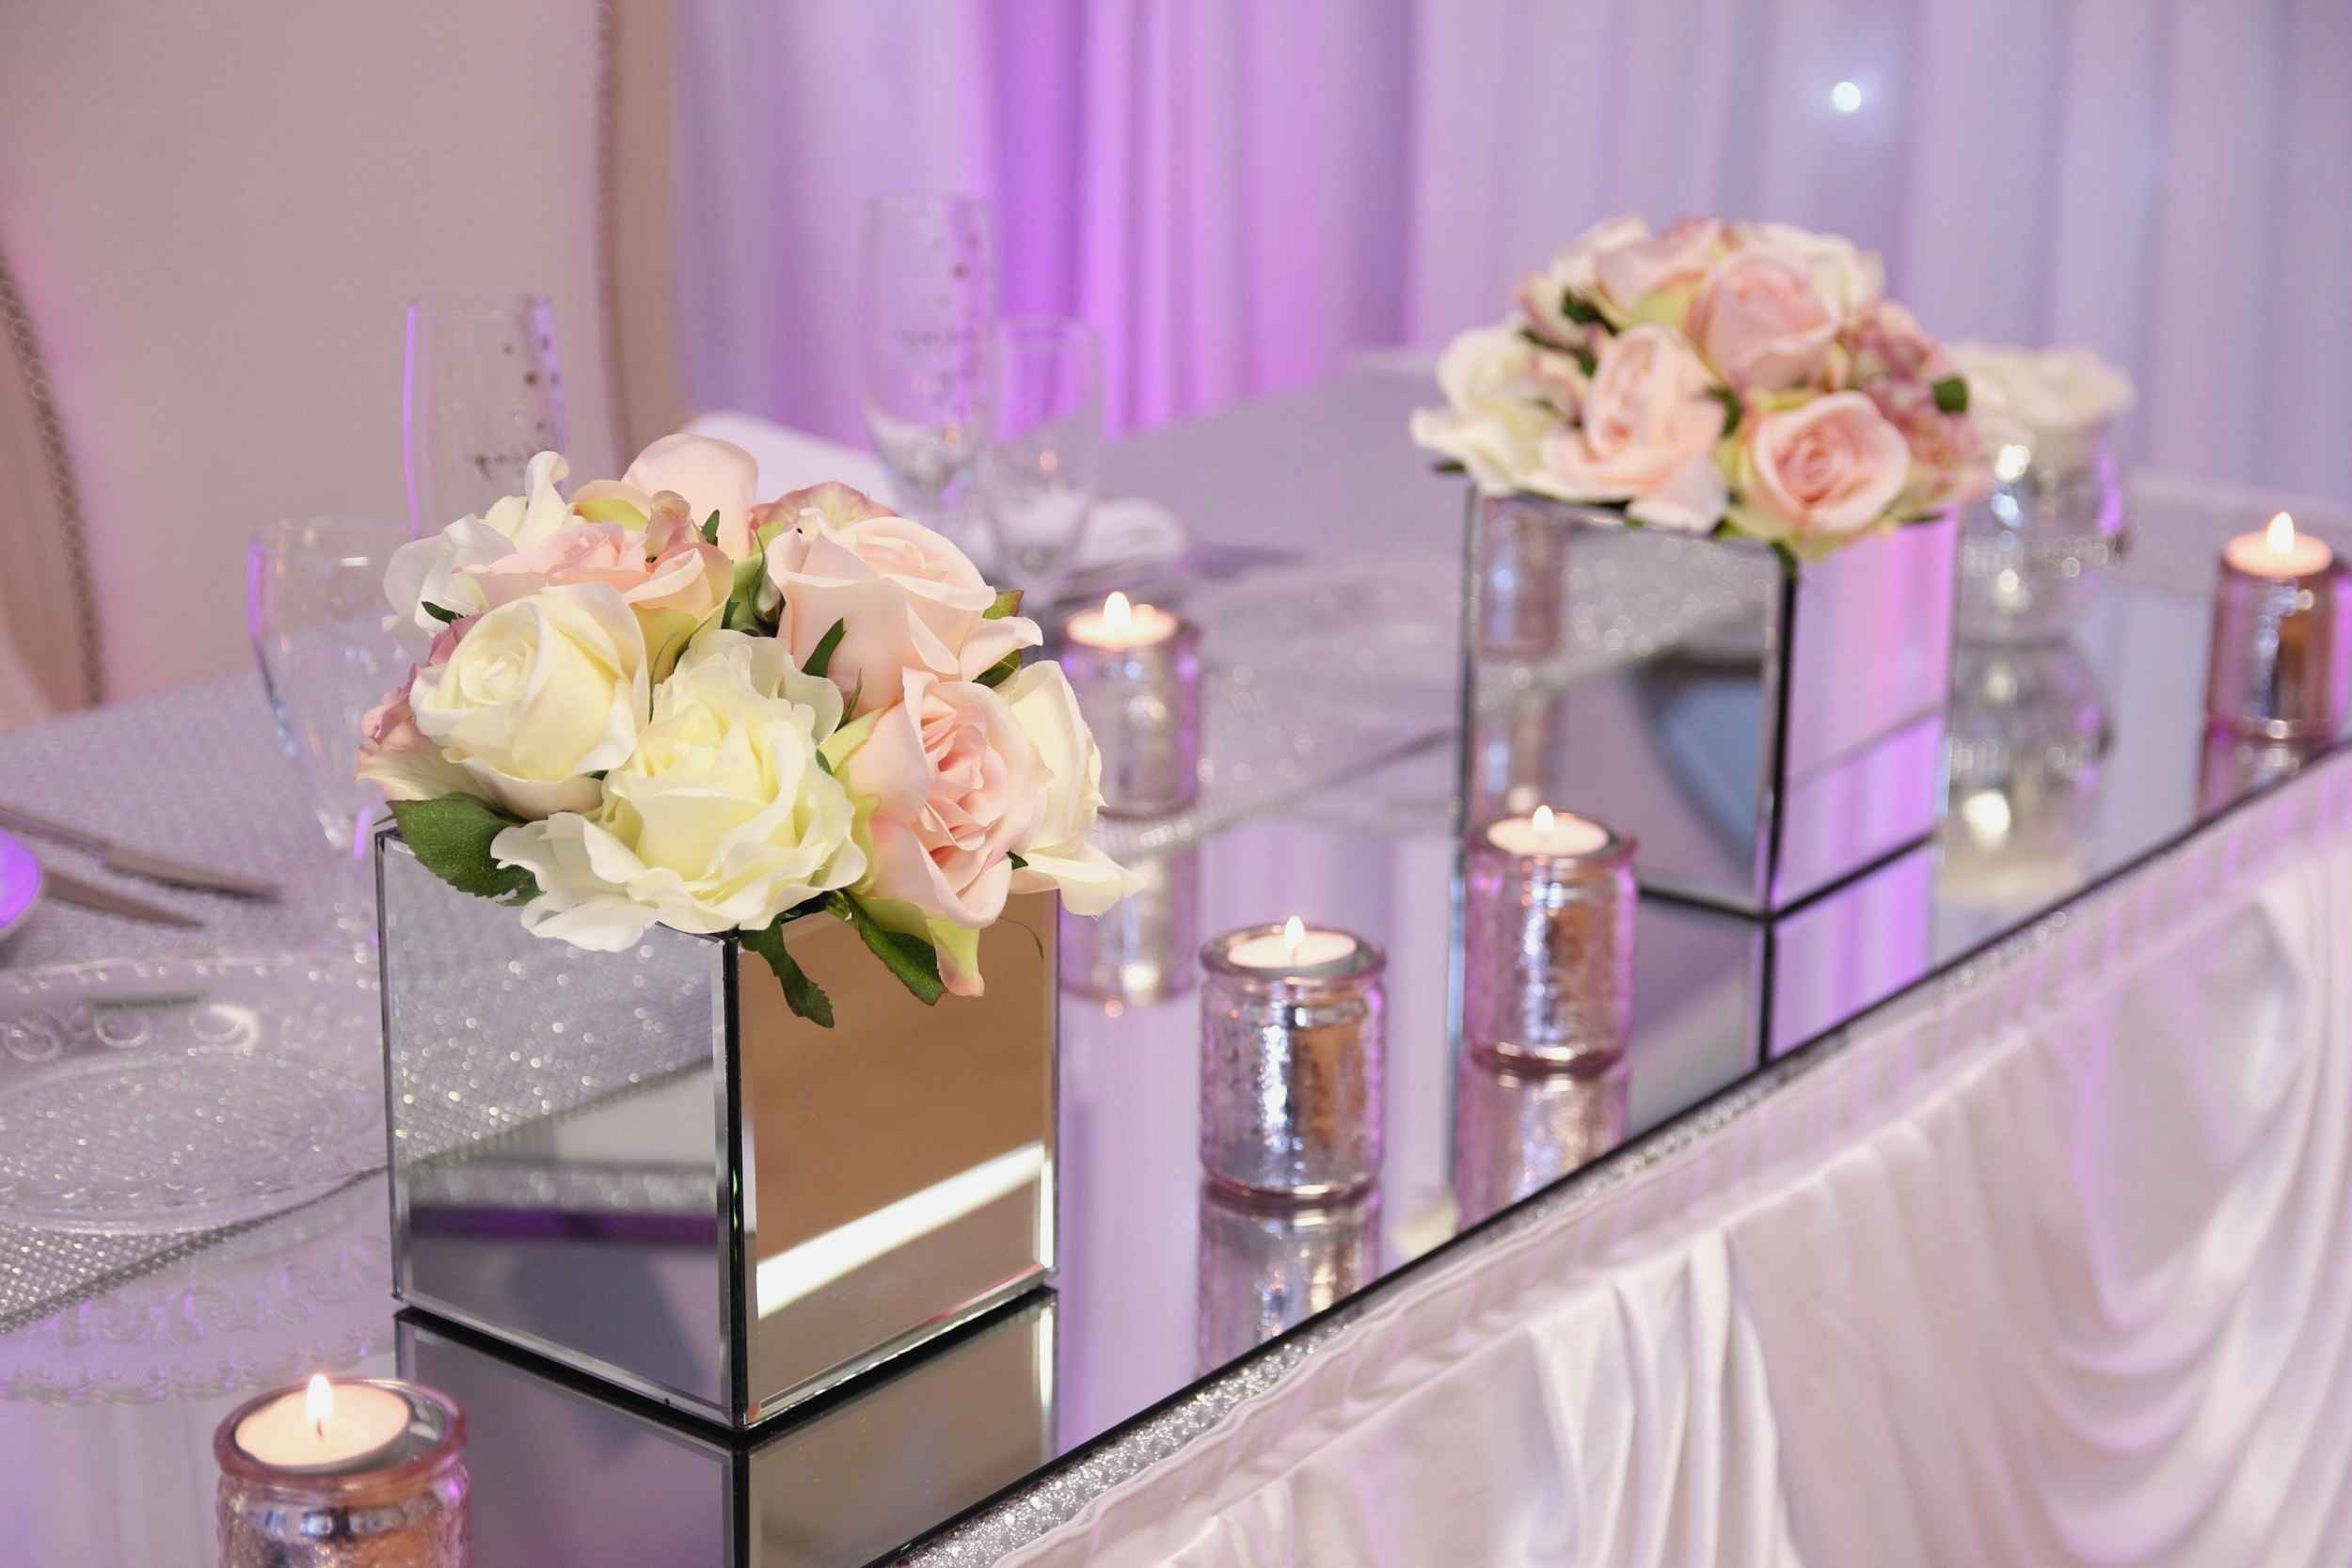 silver textured vase of amazing purple and silver wedding ideas wedding theme within purple and lavender wedding decorations best mirror vase 8 1h vases mirrored square cube riser inch